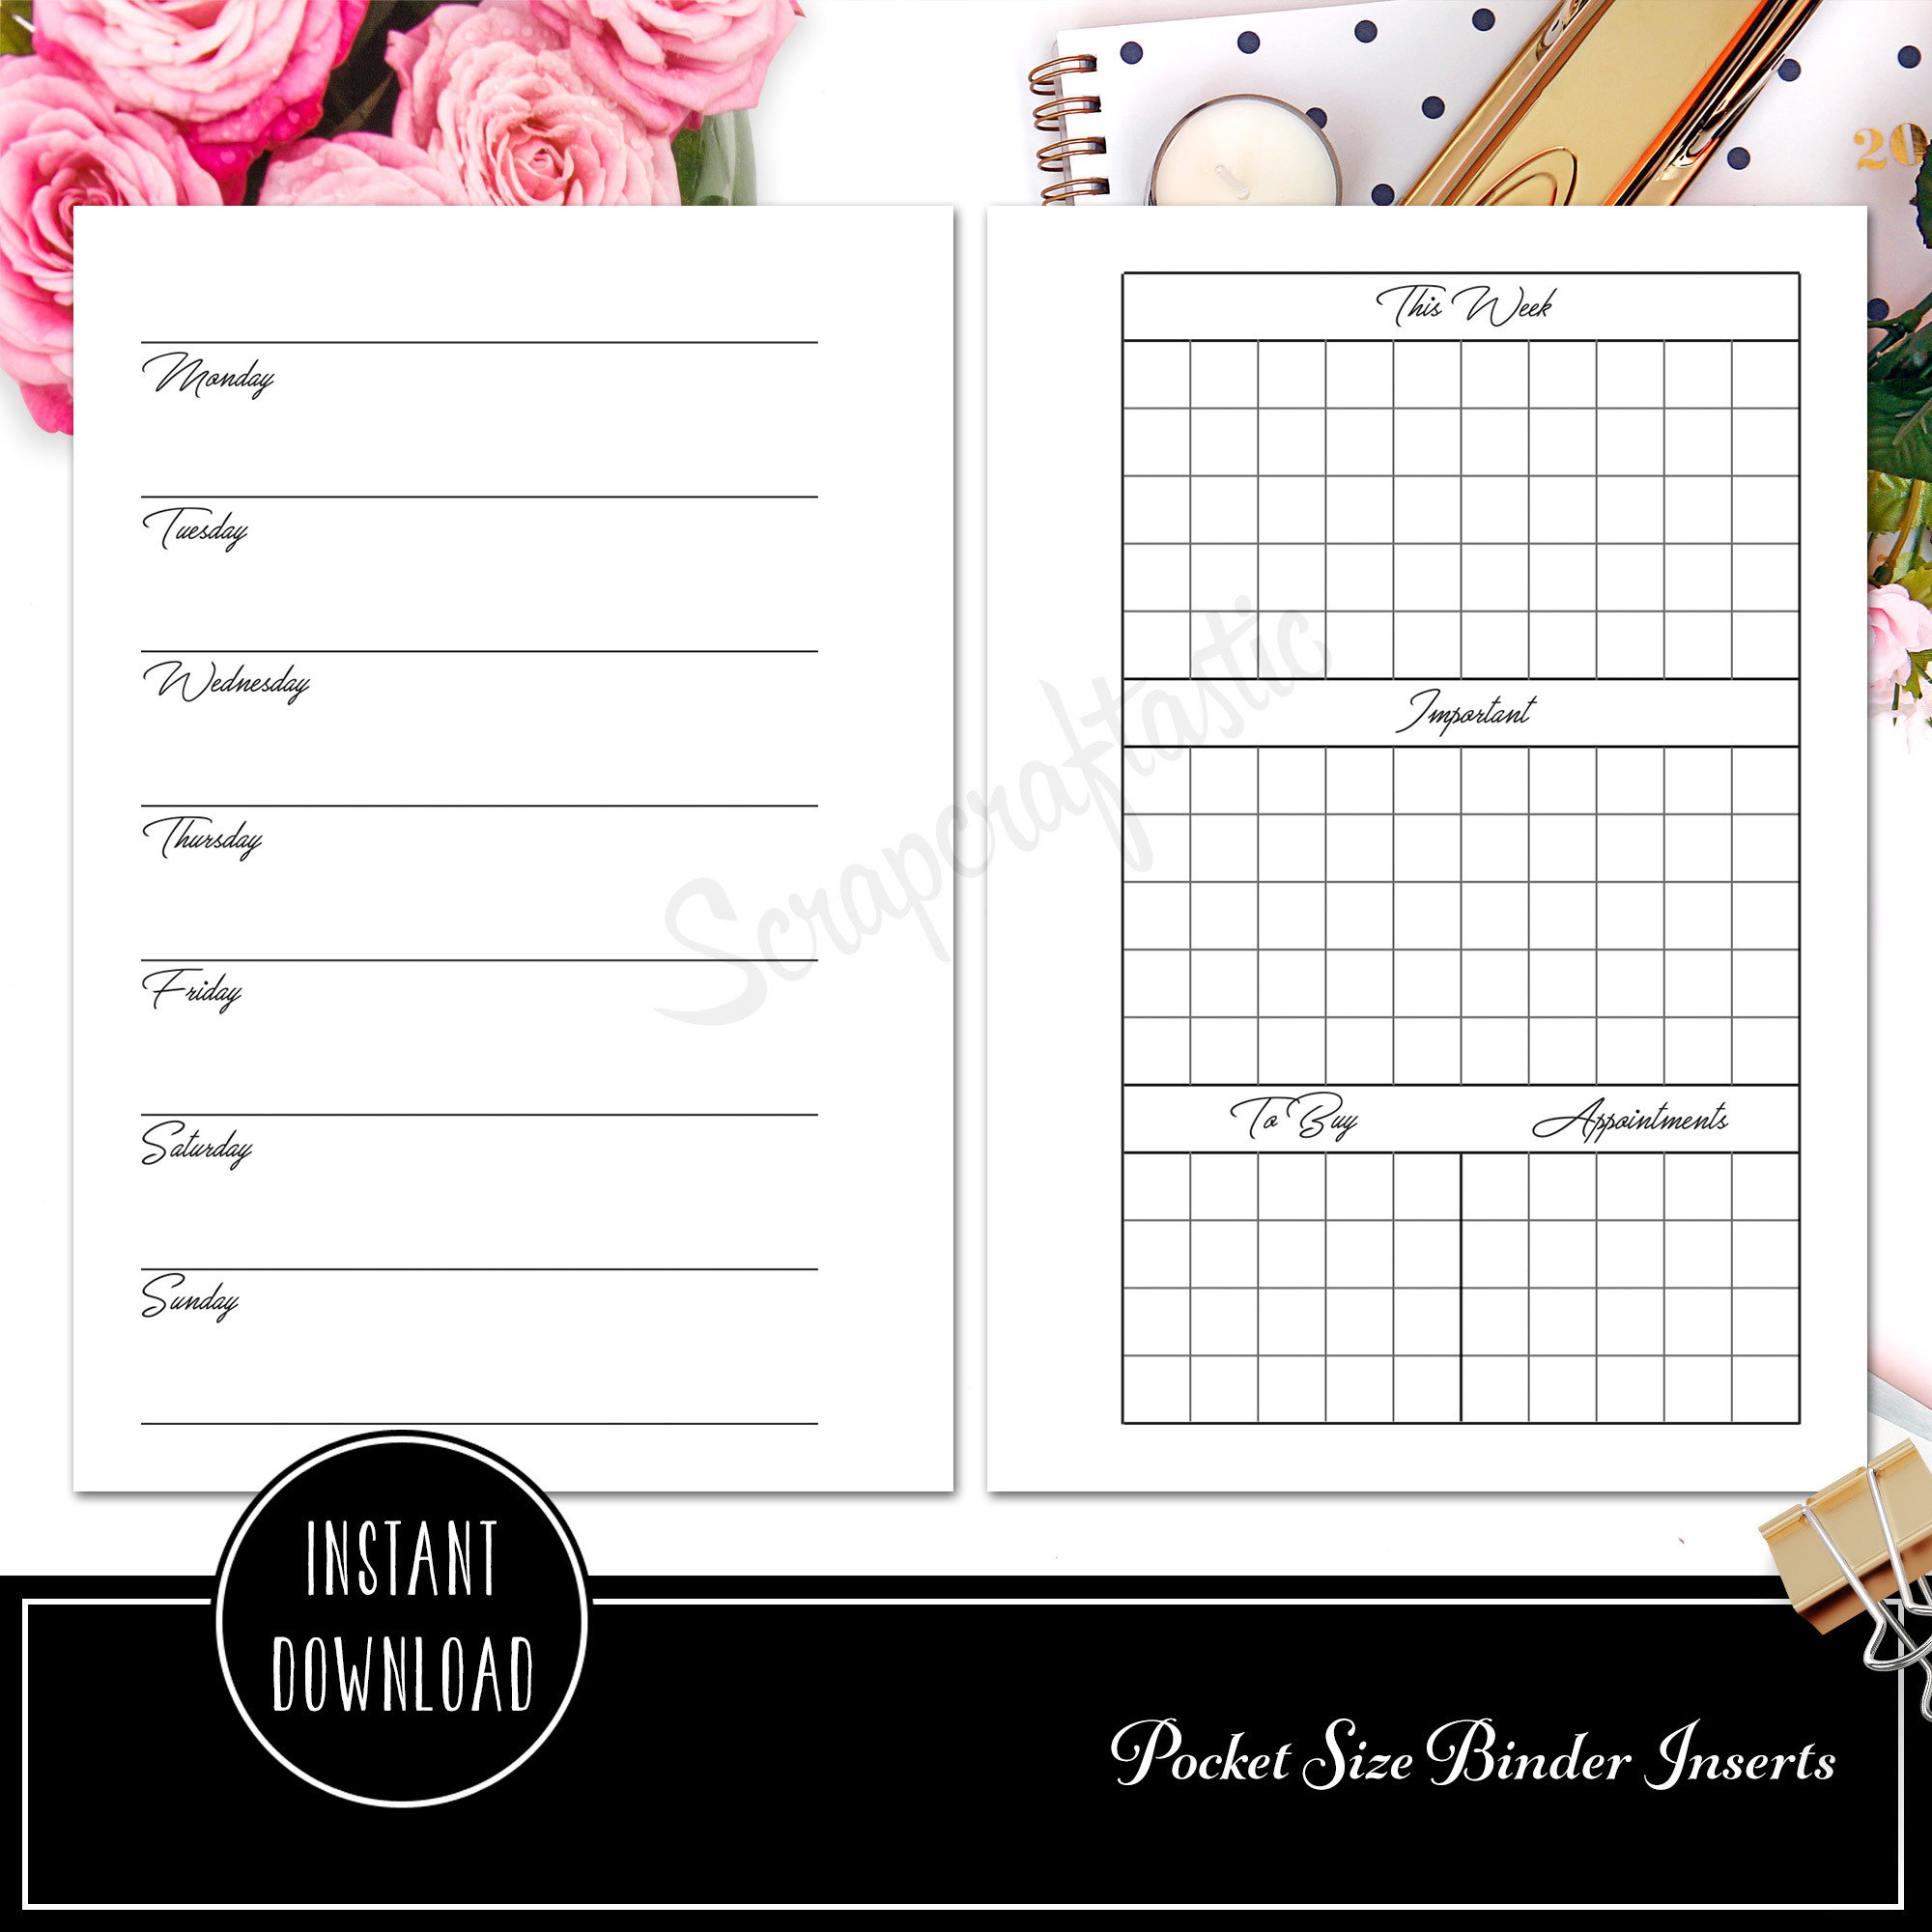 Week on Two Pages Pocket Binder Printable Insert Refill Undated 20171201-02